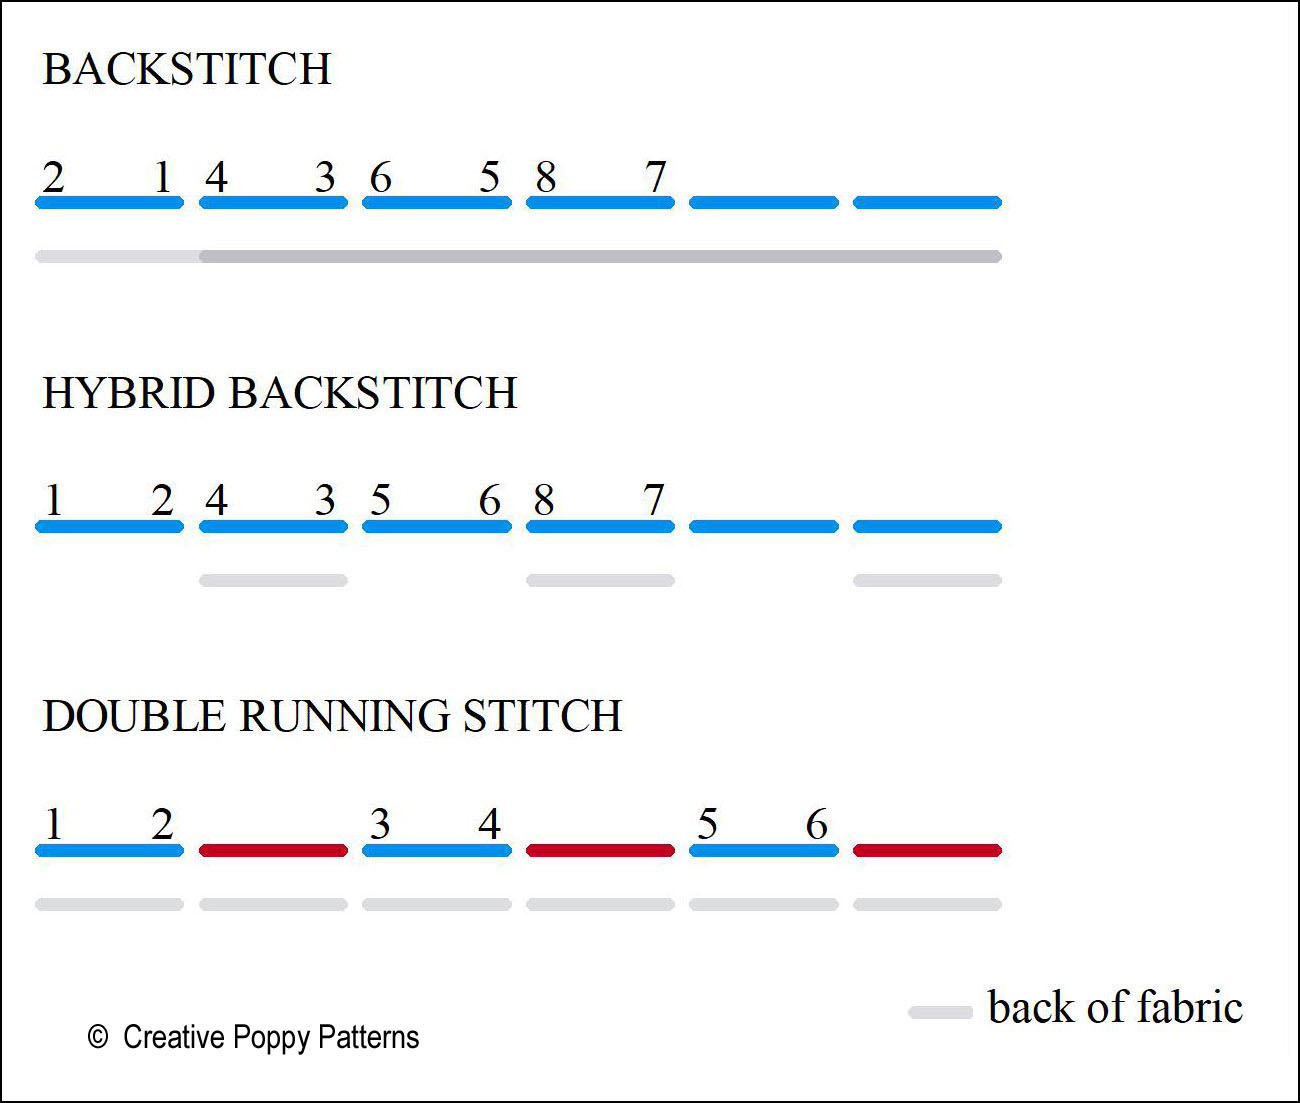 hybrid backstitch: work a running stitch, returning backwards every second stitch to fill the blank